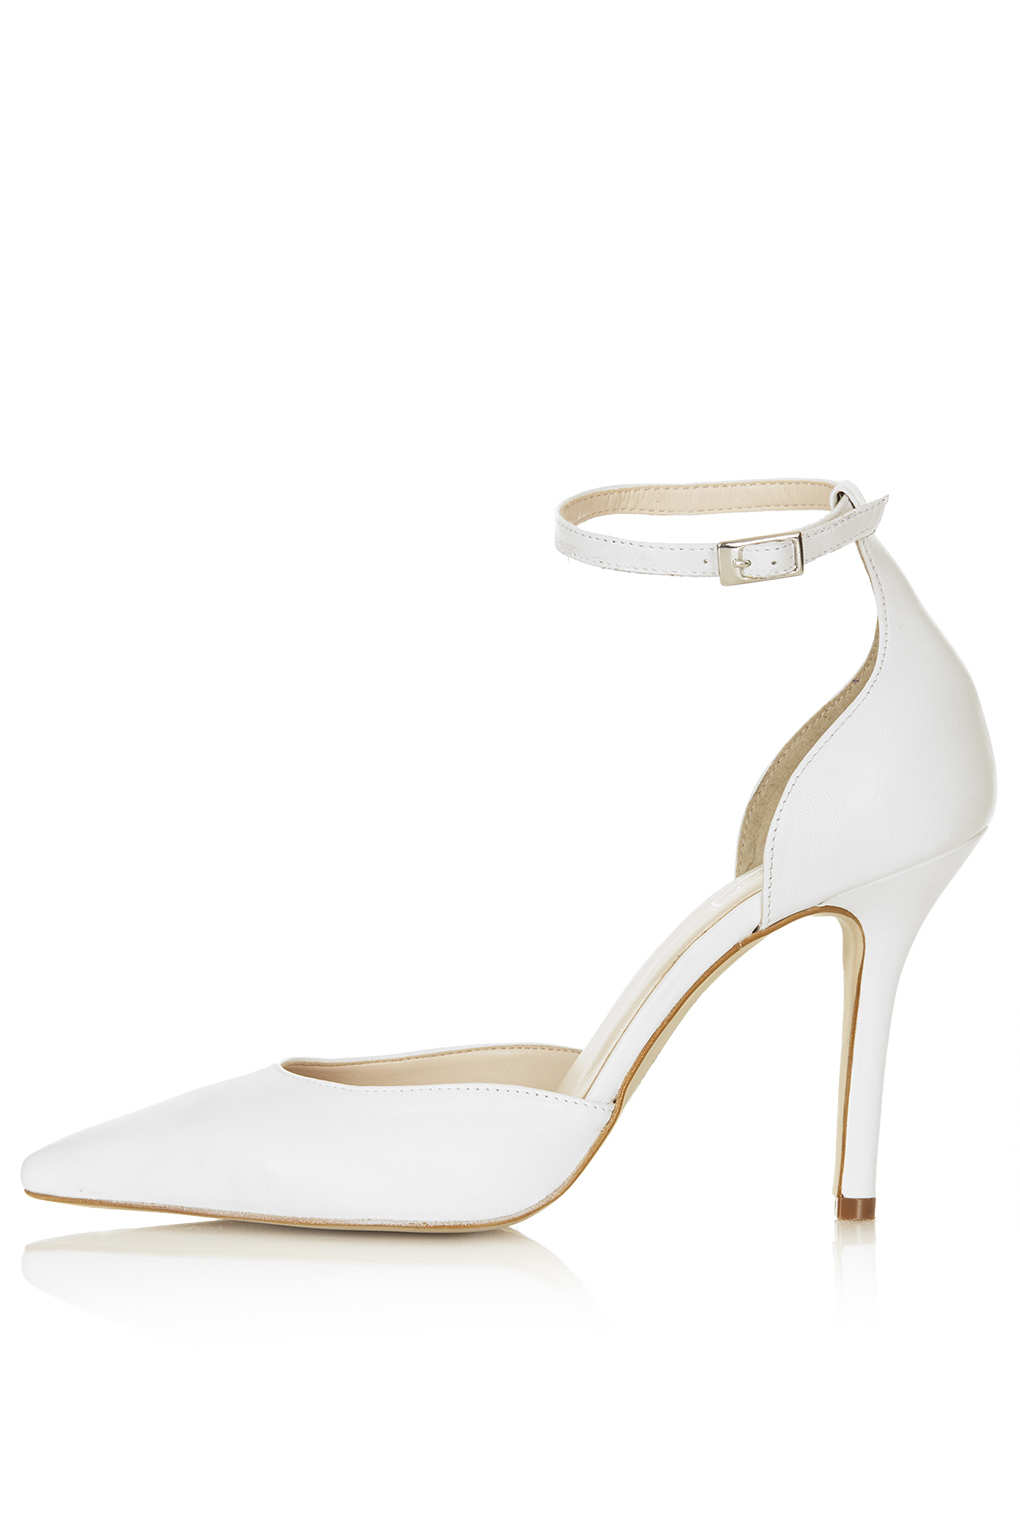 Lyst - Topshop Gizmo Ankle Strap Court Shoes in White